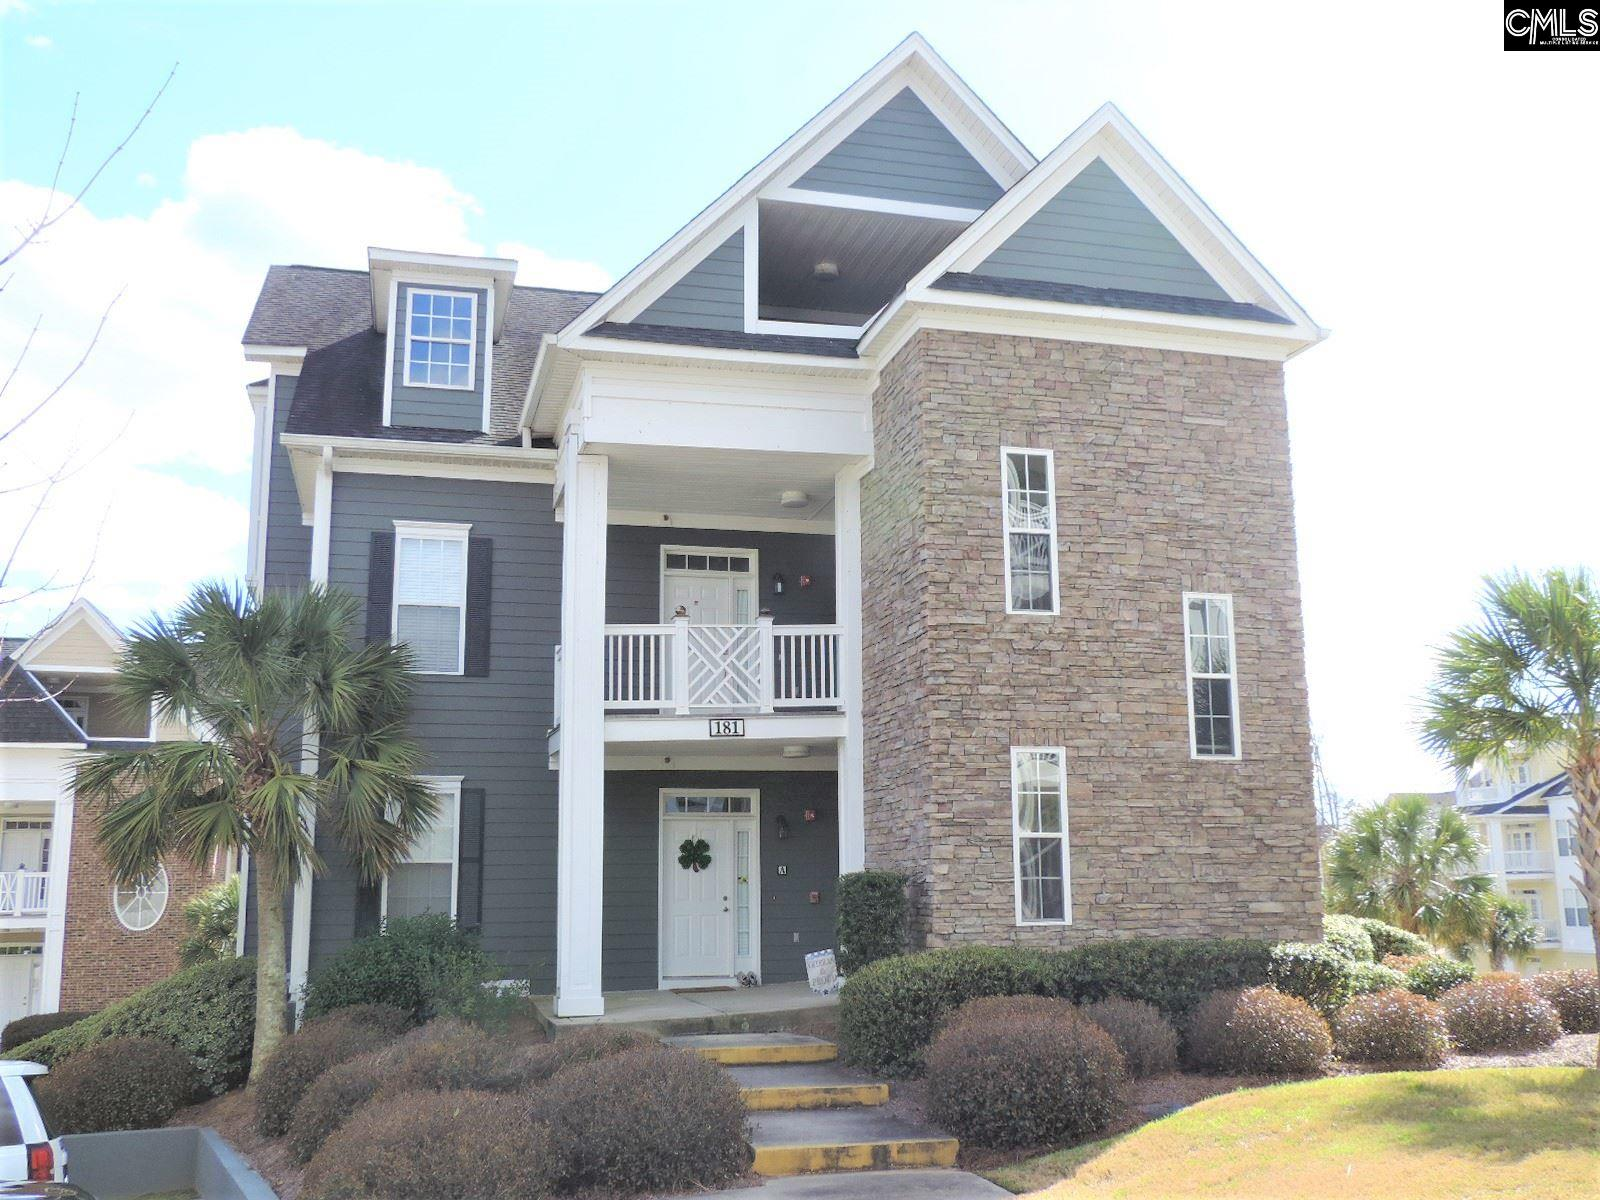 181 Sandlapper Lexington, SC 29072